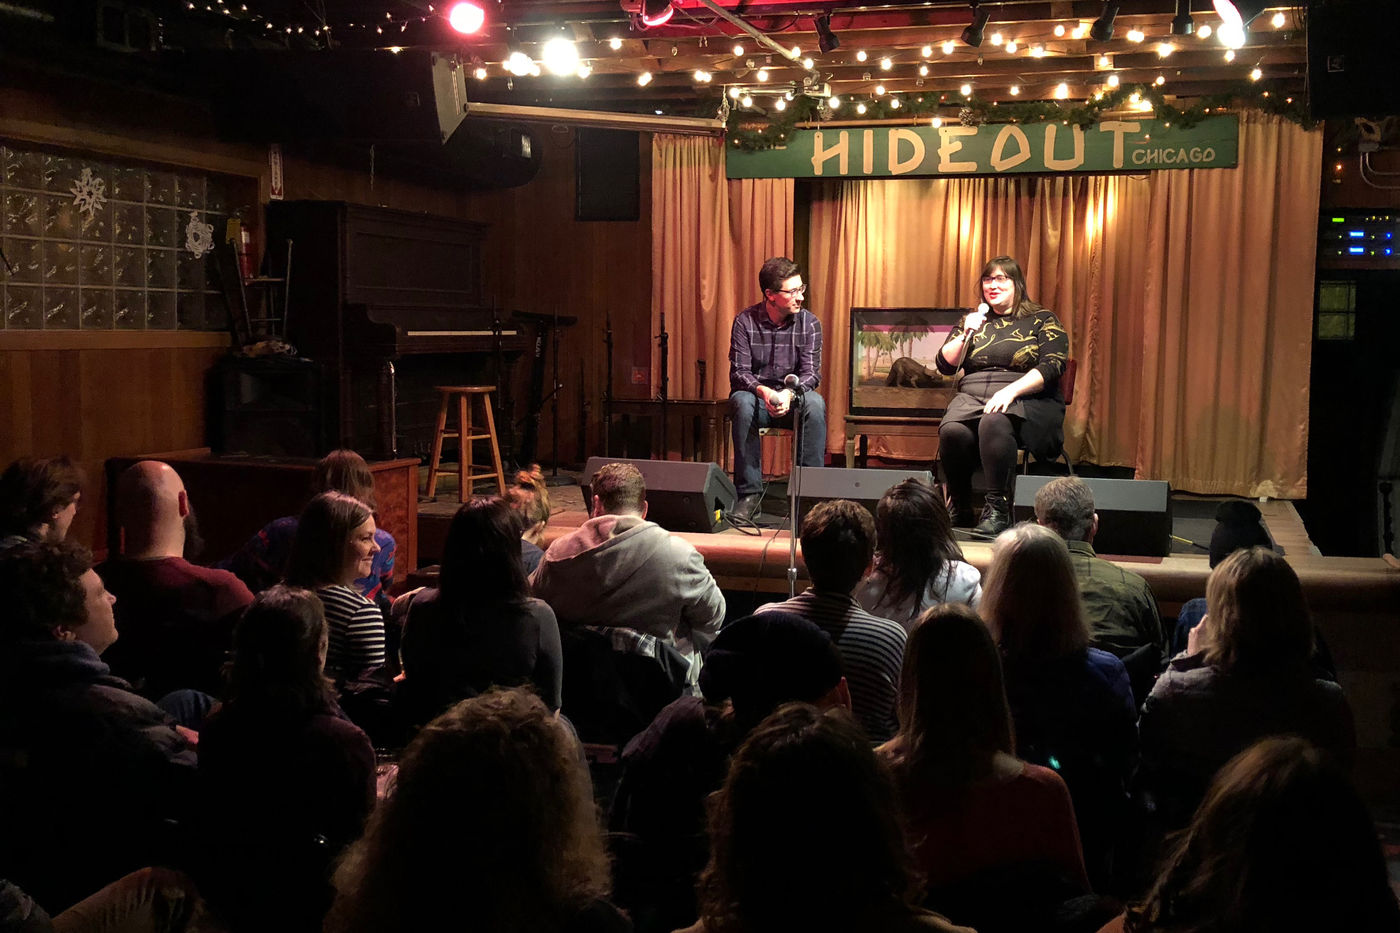 """A man and woman sitting on a small stage speak to a crowd that is seated in front of them. A sign reading, """"The Hideout Chicago"""" hangs behind them. The woman holds a microphone, and the man looks towards her."""